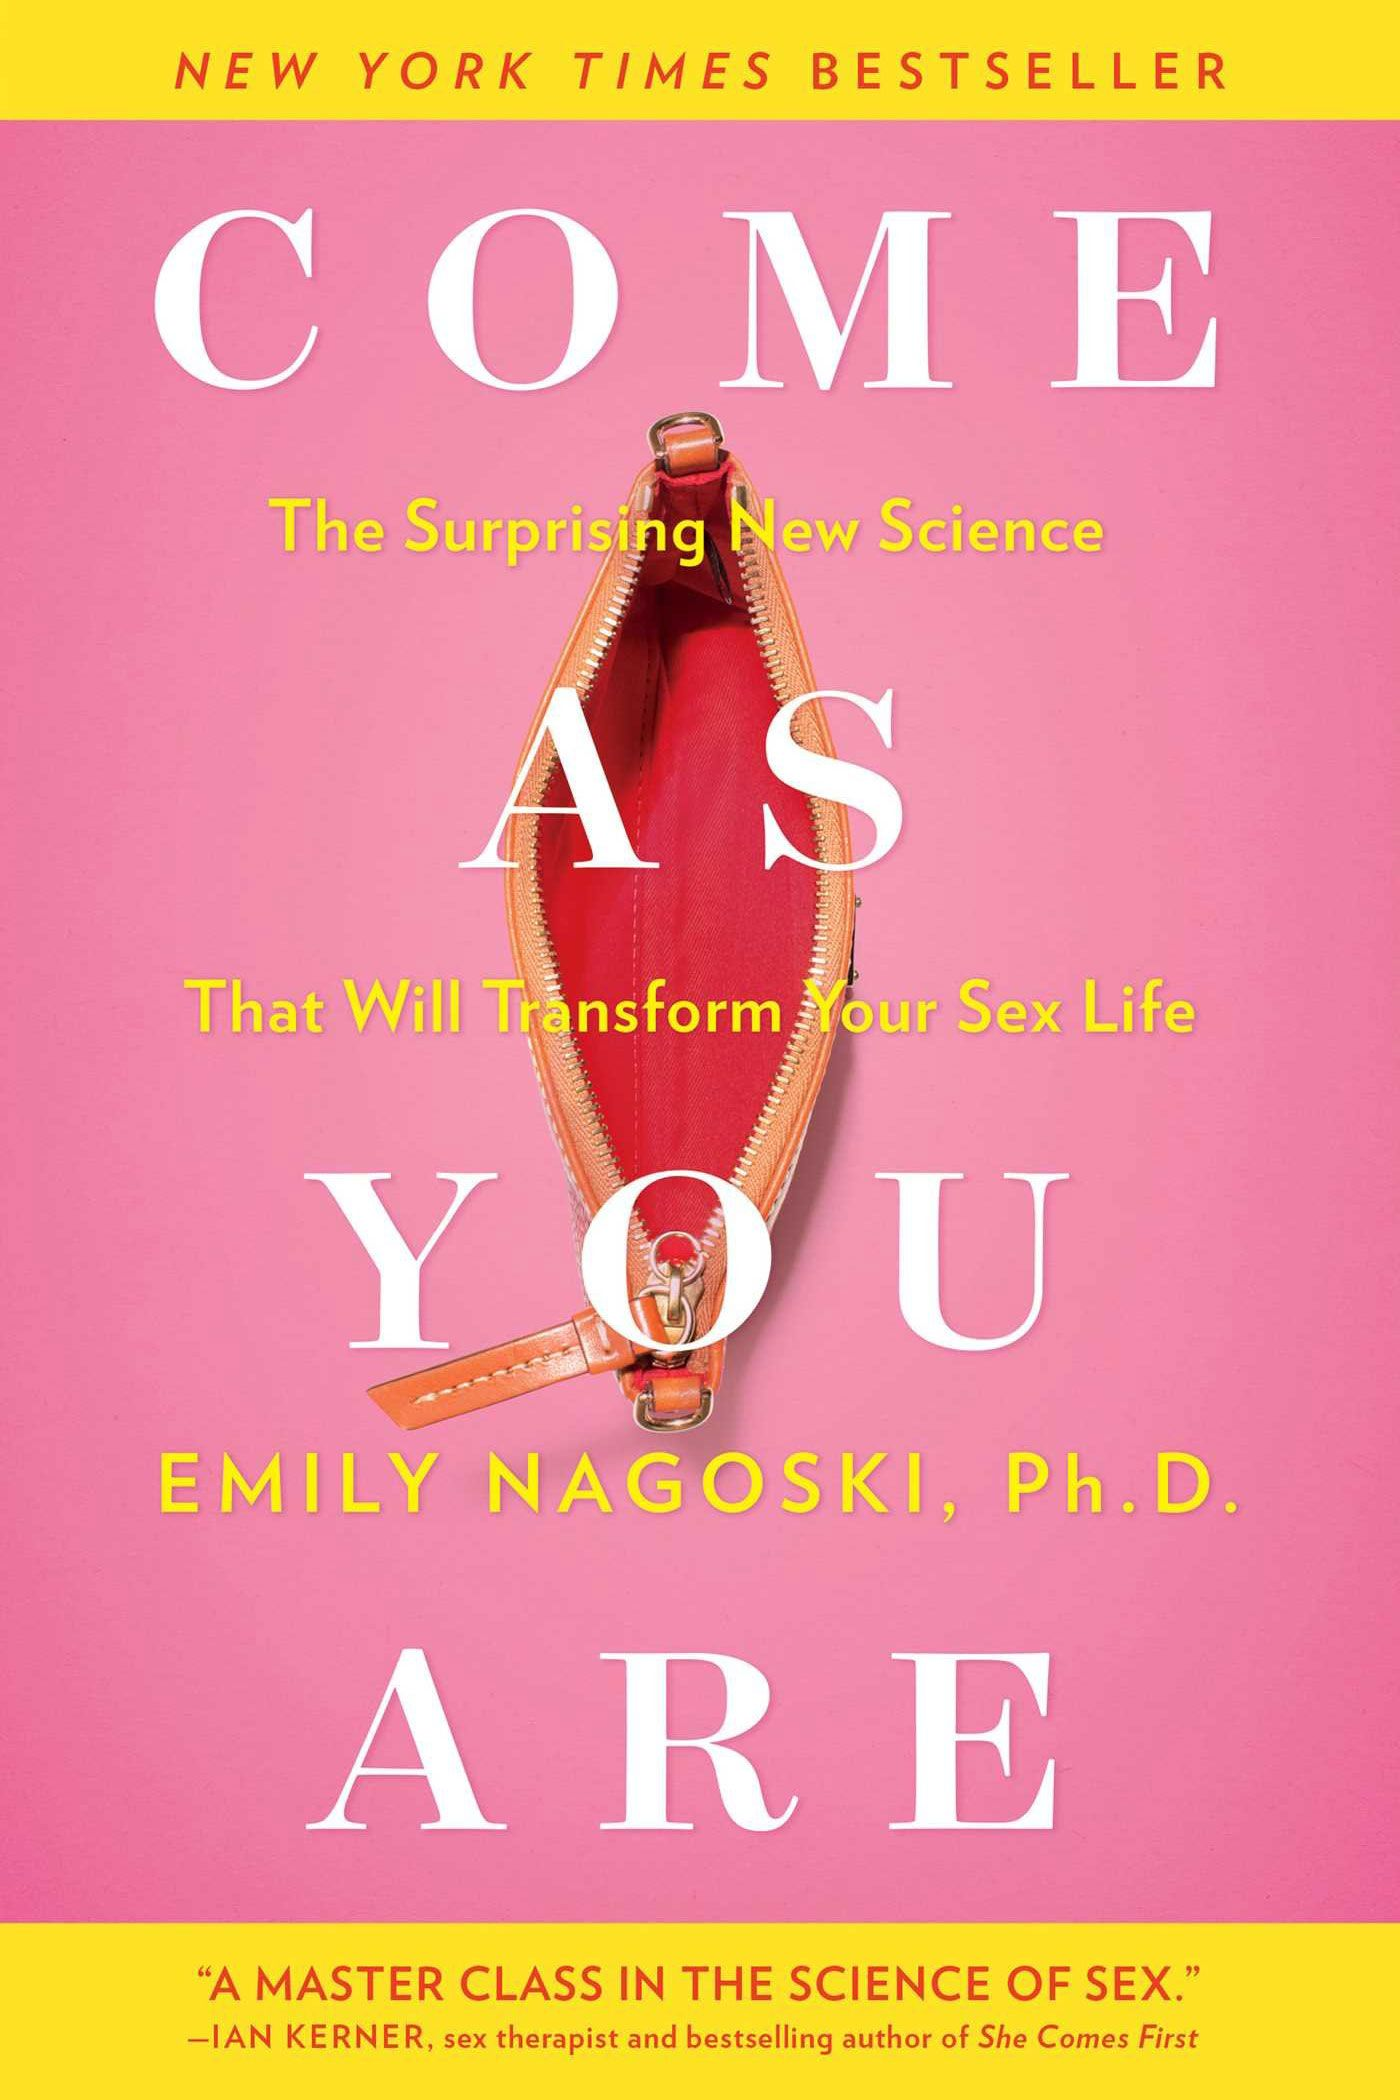 "<p>""Emily Nagoski has been an inspiration in the sex industry. She is witty and to the point with her work in supporting women have the best sex of their lives. This book is an easy read, but has the best down-to-earth science and fun facts that you never knew you needed to know.""  <em data-redactor-tag=""em"" data-verified=""redactor"">—<a href=""http://www.drcarlen.com/"" data-tracking-id=""recirc-text-link"" target=""_blank"">Carlen Costa</a>, sexologist and relationship psychotherapist  </em><span class=""redactor-invisible-space"" data-verified=""redactor"" data-redactor-tag=""span"" data-redactor-class=""redactor-invisible-space""><em data-redactor-tag=""em"" data-verified=""redactor""></em></span></p><p><a href=""https://www.amazon.com/Come-You-Are-Surprising-Transform-ebook/dp/B00LD1ORBI/ref=sr_1_1?s=books&ie=UTF8&qid=1483979756&sr=1-1&keywords=Come+as+Your+Are%3A+The+Surprising+New+Science+that+Will+Transform+Your+Sex+Life+by+Emily+Nagoski"" target=""_blank"" data-tracking-id=""recirc-text-link"">BUY NOW</a></p>"